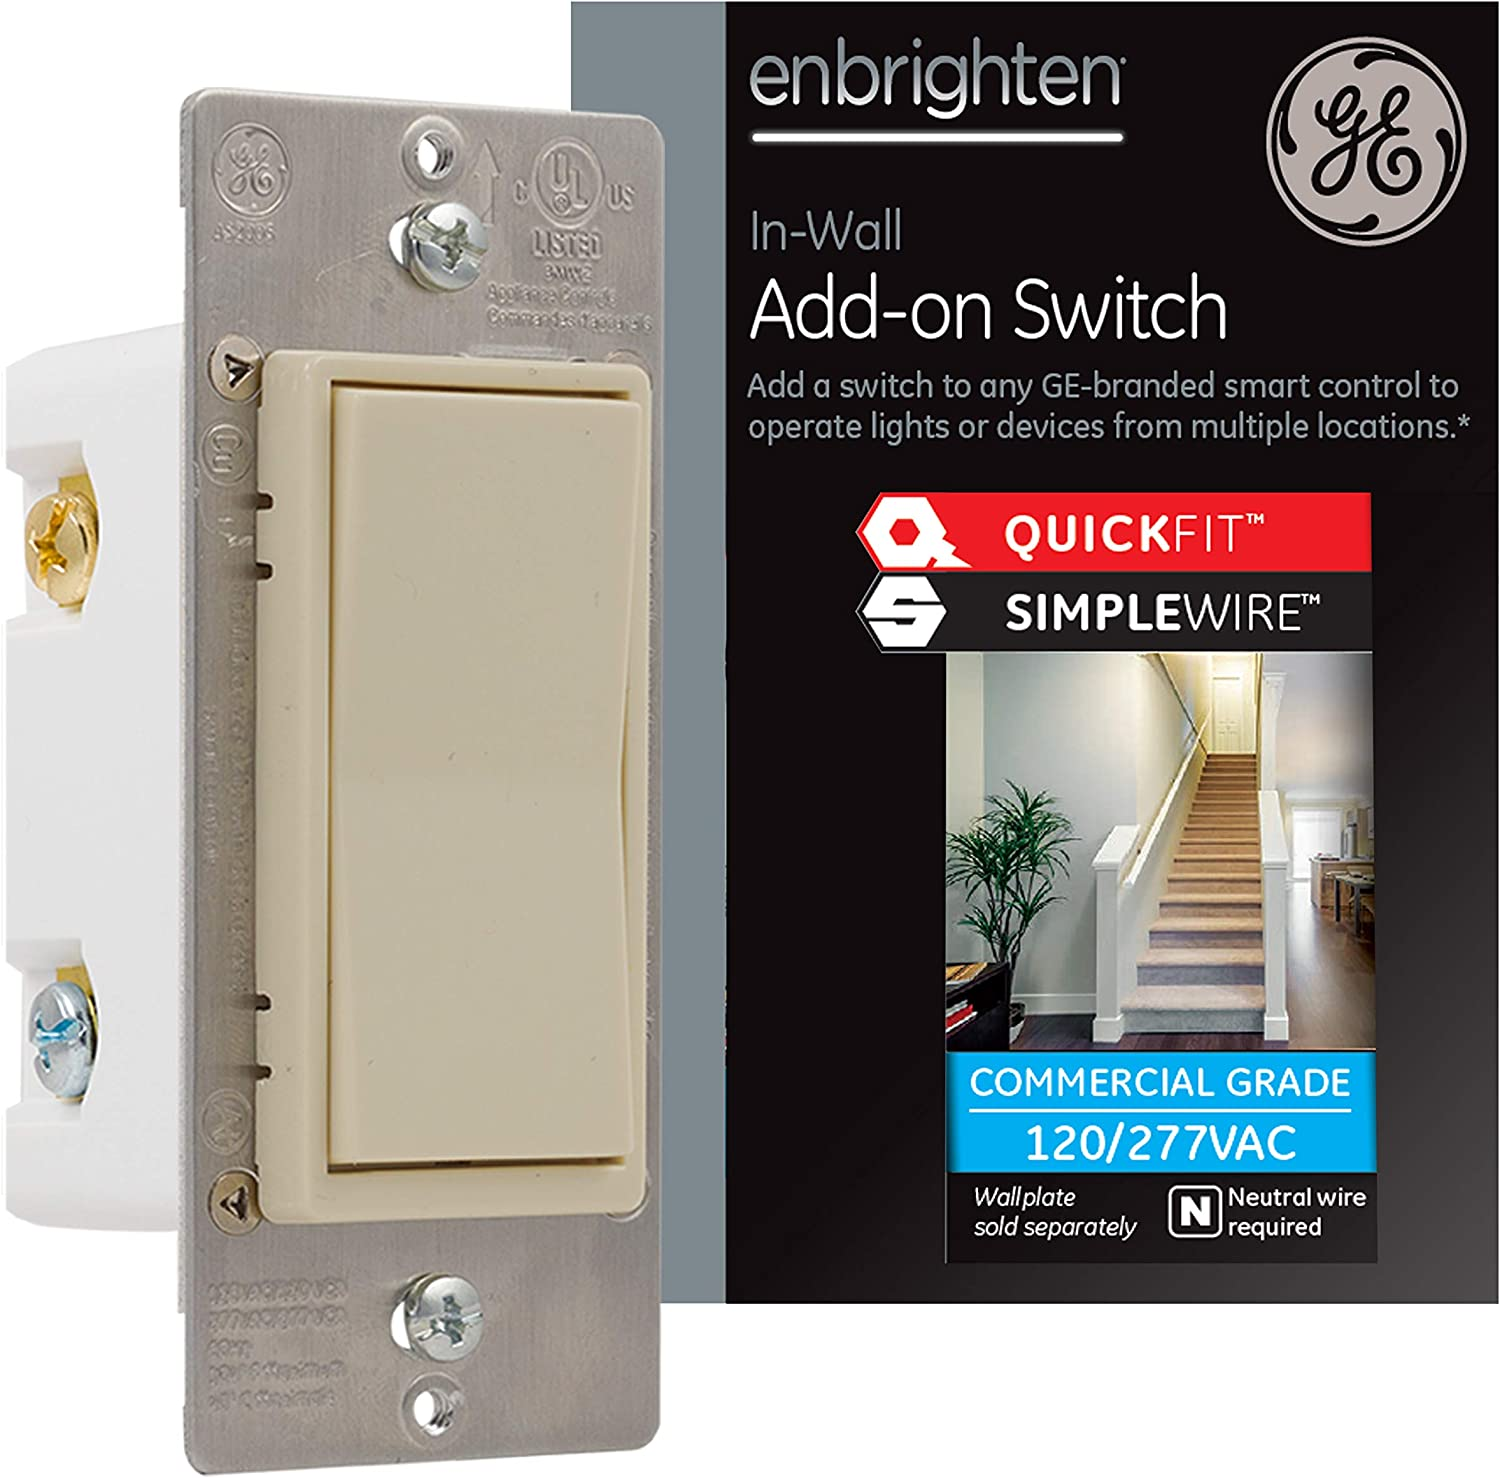 GE Enbrighten Add-On Switch with QuickFit and SimpleWire, GE Z-Wave/GE Zigbee Smart Lighting Controls, Works with Alexa, Google Assistant, NOT A STANDALONE SWITCH, Light Almond, 47333